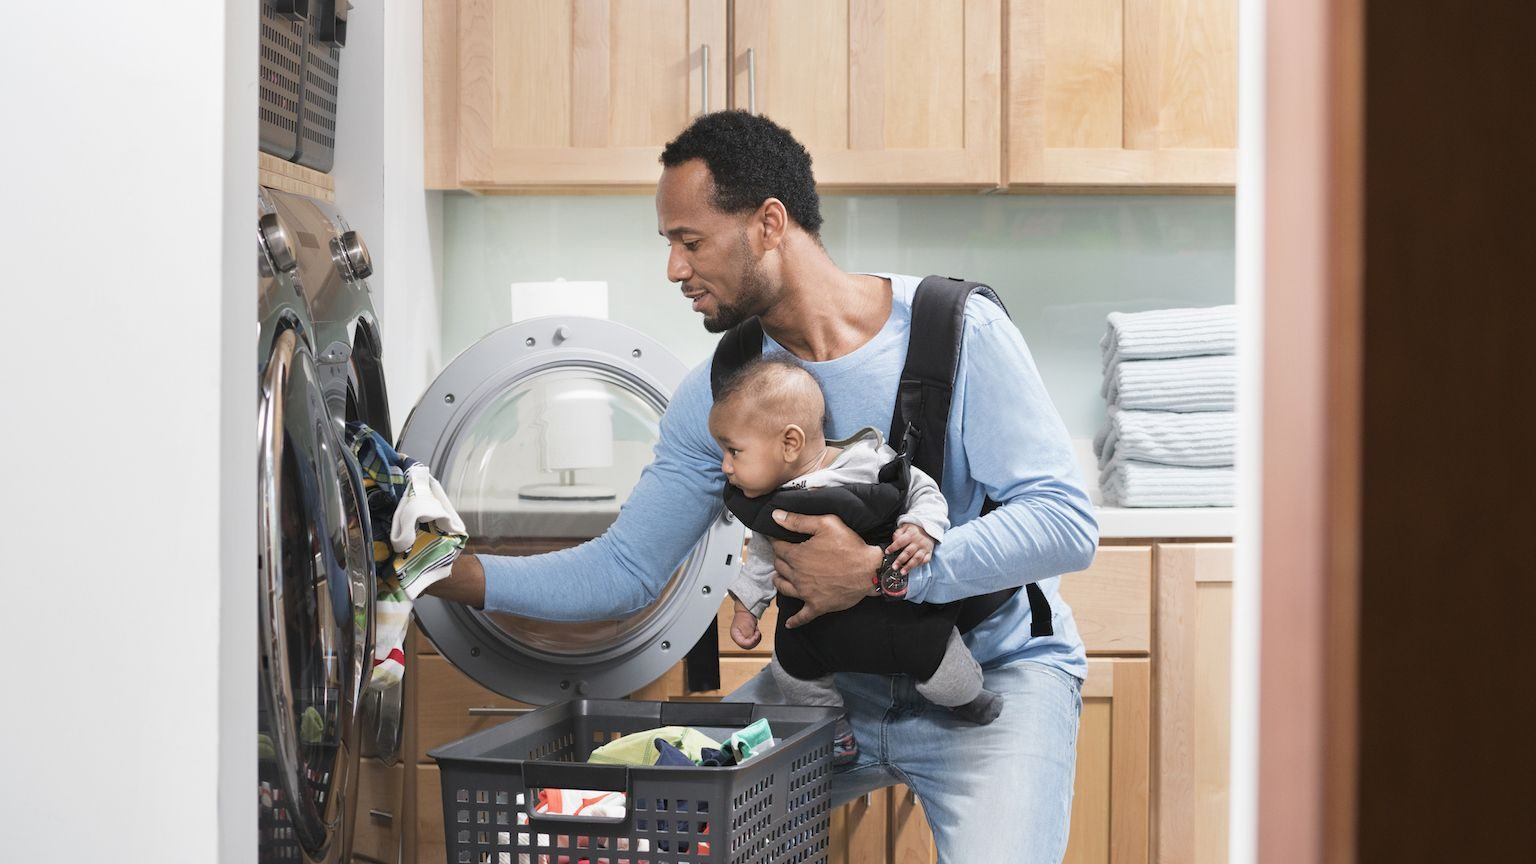 Man putting his clothes in the dryer while wearing his baby in a carrier on his chest.